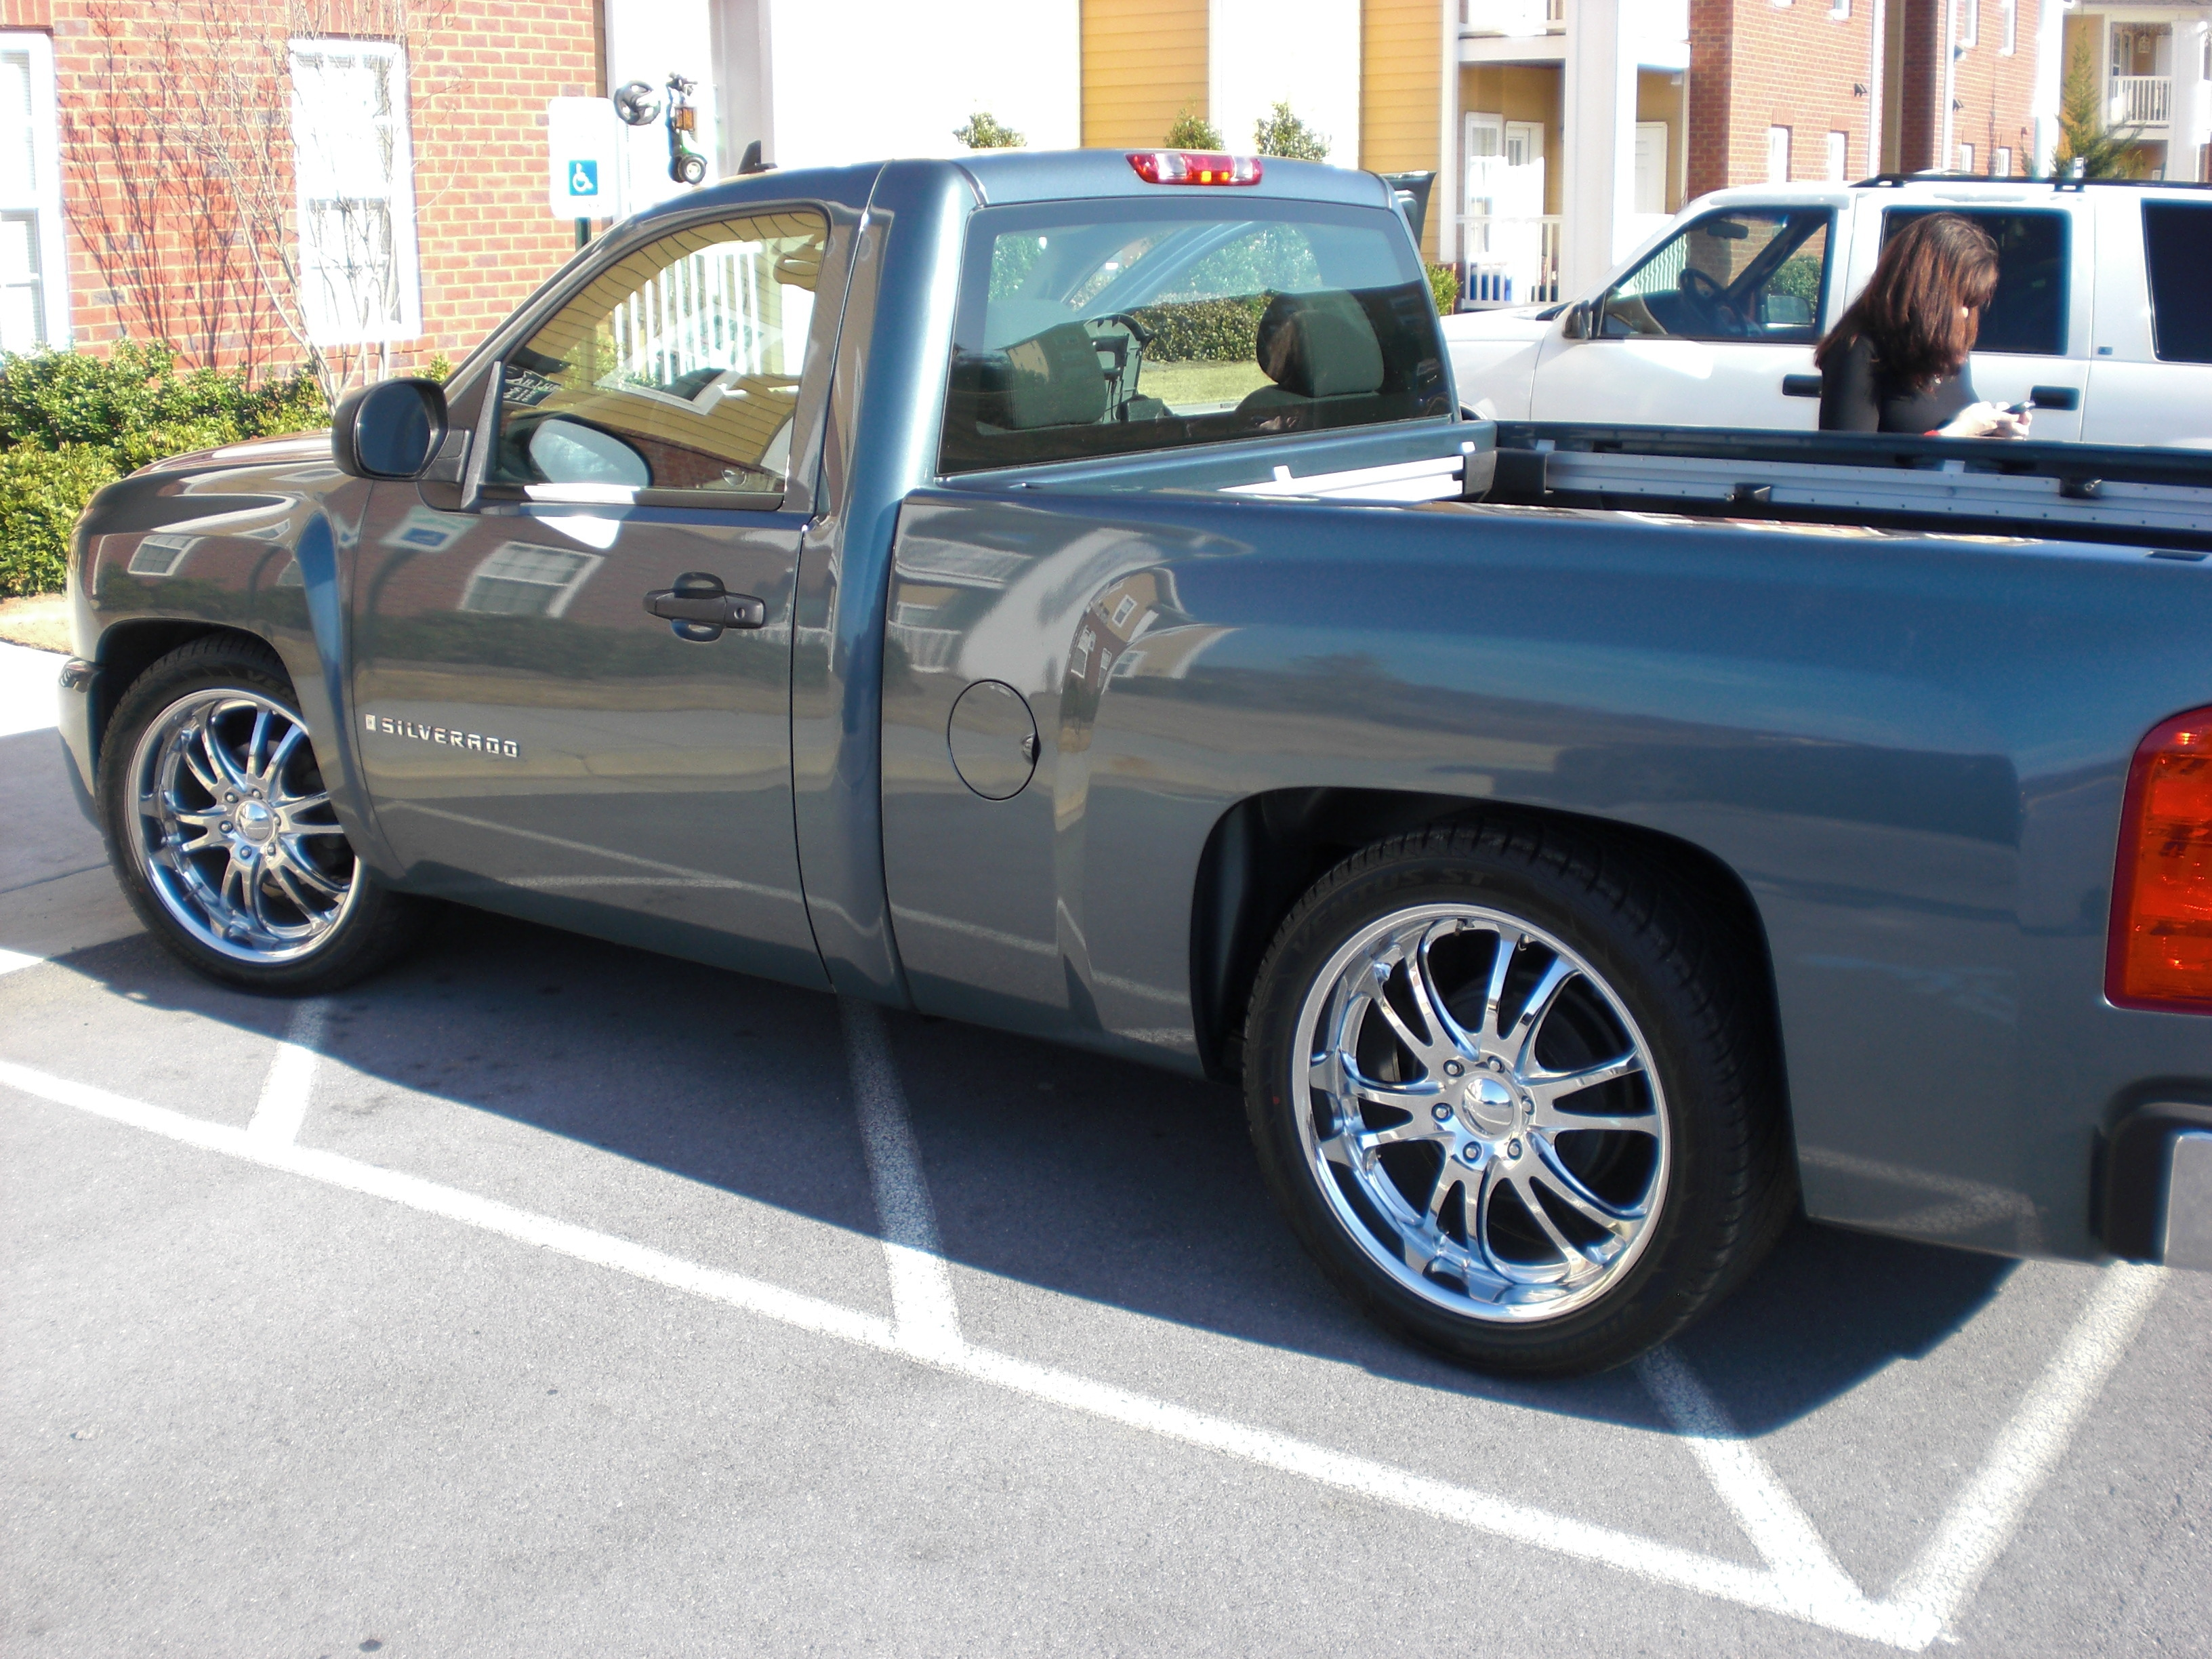 justcolin311 2008 Chevrolet Silverado 1500 Regular Cab Specs, Photos, Modification Info at CarDomain